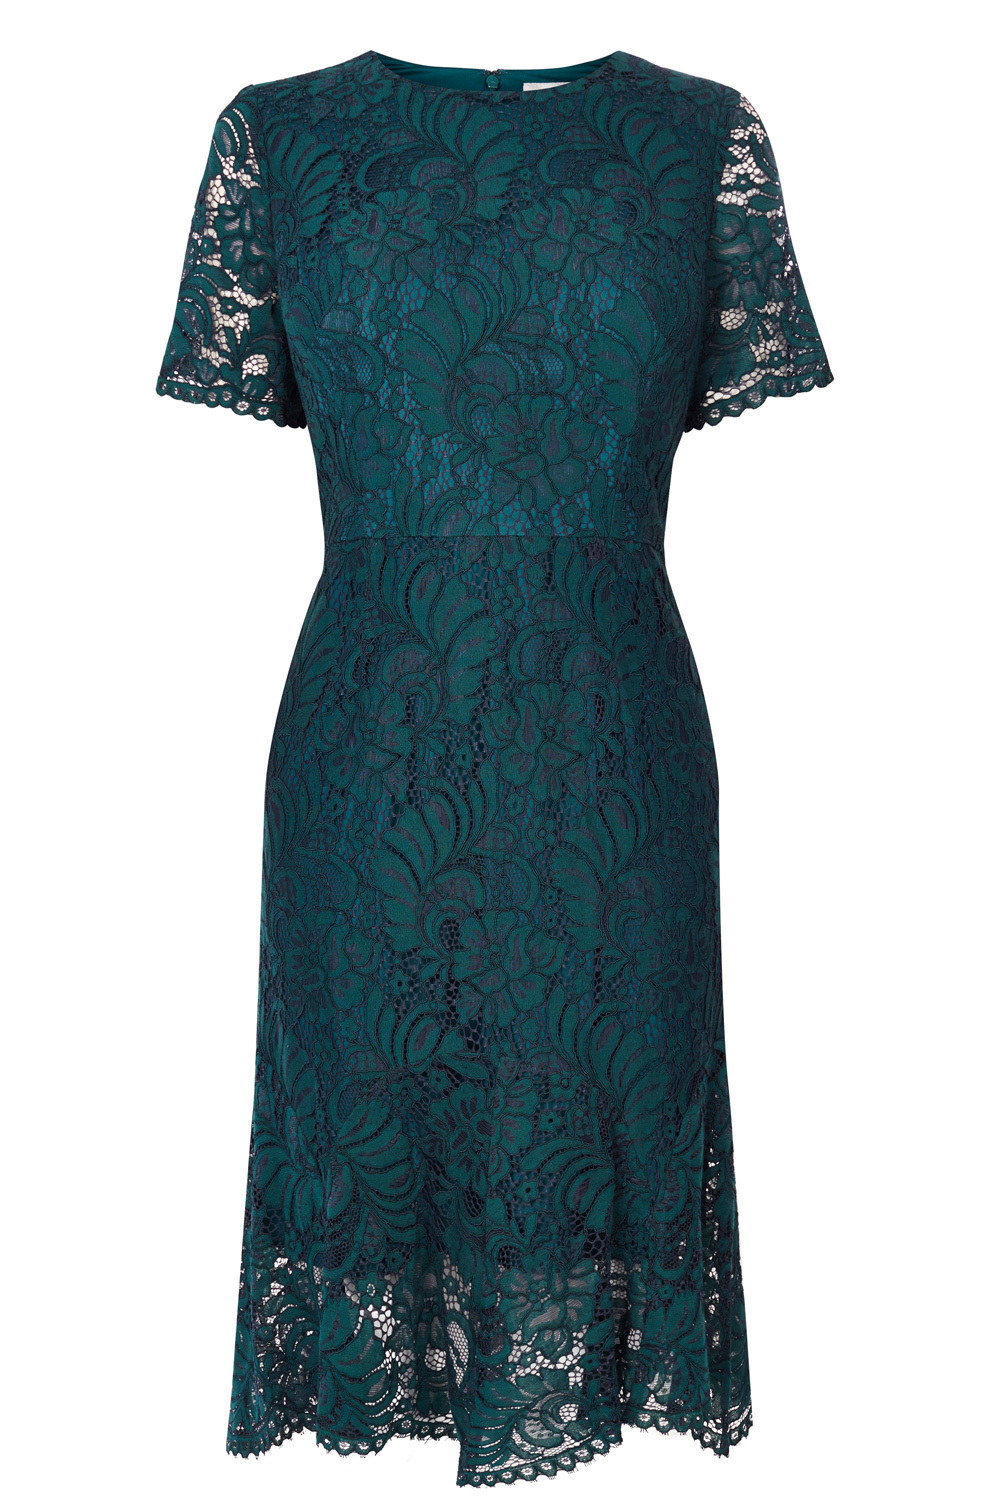 Linera Lace Dress Sl - style: shift; fit: tailored/fitted; predominant colour: teal; occasions: evening, occasion; length: just above the knee; fibres: polyester/polyamide - 100%; neckline: crew; sleeve length: short sleeve; sleeve style: standard; texture group: lace; pattern type: fabric; pattern size: light/subtle; pattern: patterned/print; embellishment: lace; season: a/w 2016; wardrobe: event